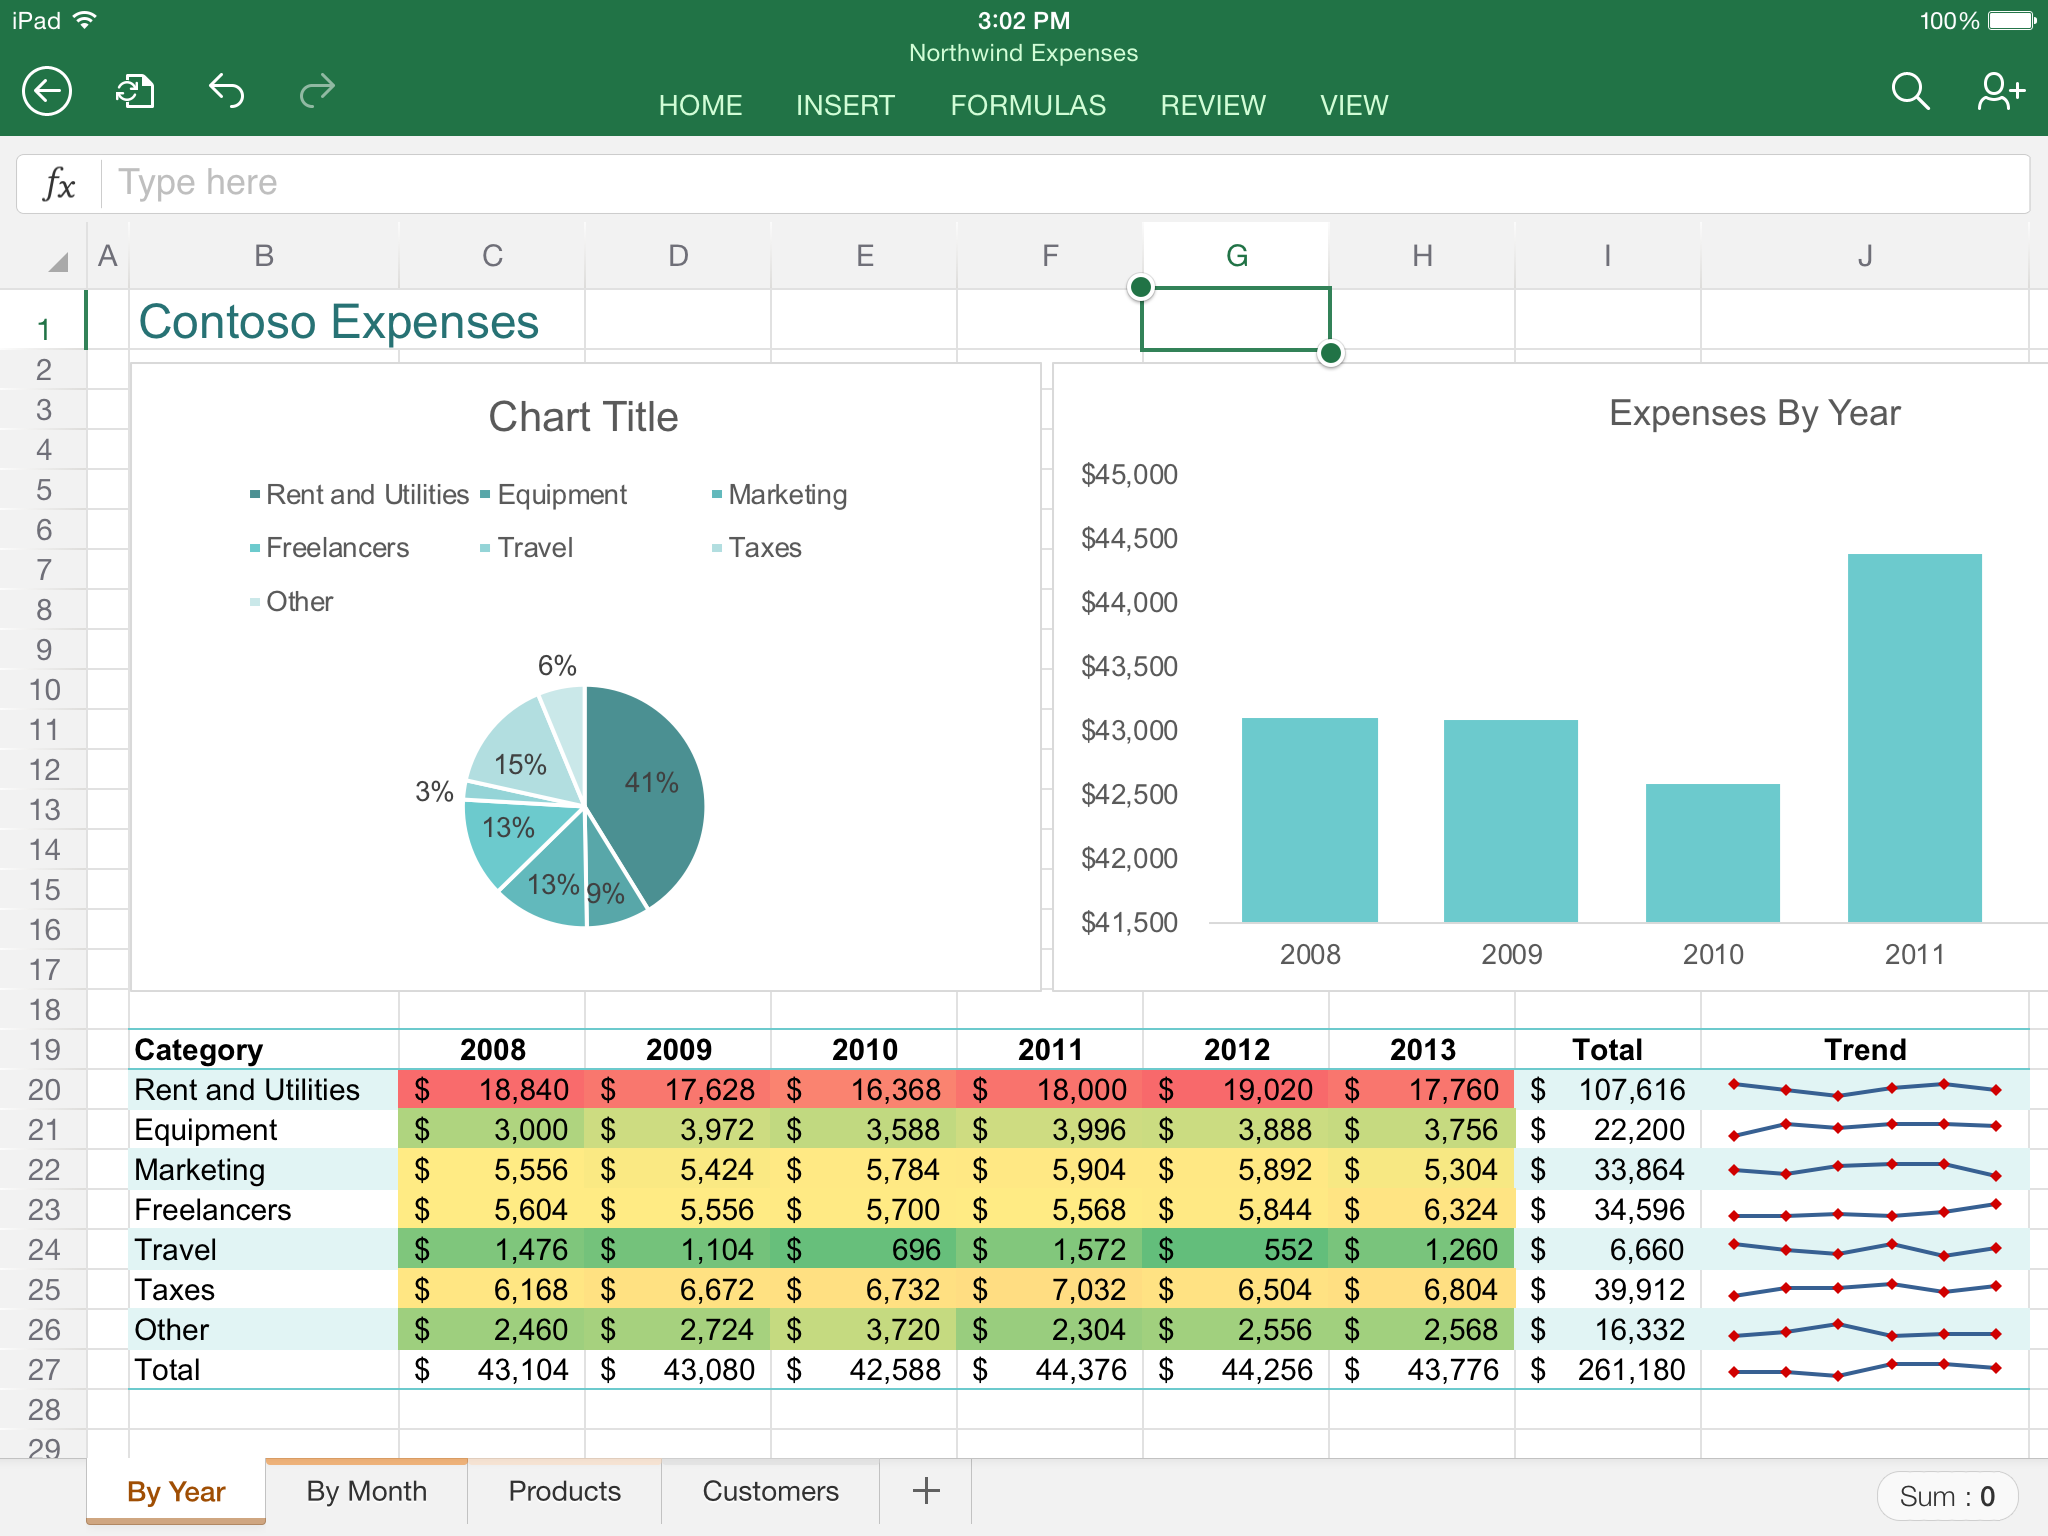 Ediblewildsus  Personable App Highlight Excel  Mobile Digital Now With Hot Excel In Action With Amusing How To Change Cell Color In Excel Also Loan Payment Calculator Excel In Addition Excel Square And If Then Formulas In Excel As Well As Vlookups In Excel Additionally Run Regression In Excel From Youstonybrookedu With Ediblewildsus  Hot App Highlight Excel  Mobile Digital Now With Amusing Excel In Action And Personable How To Change Cell Color In Excel Also Loan Payment Calculator Excel In Addition Excel Square From Youstonybrookedu